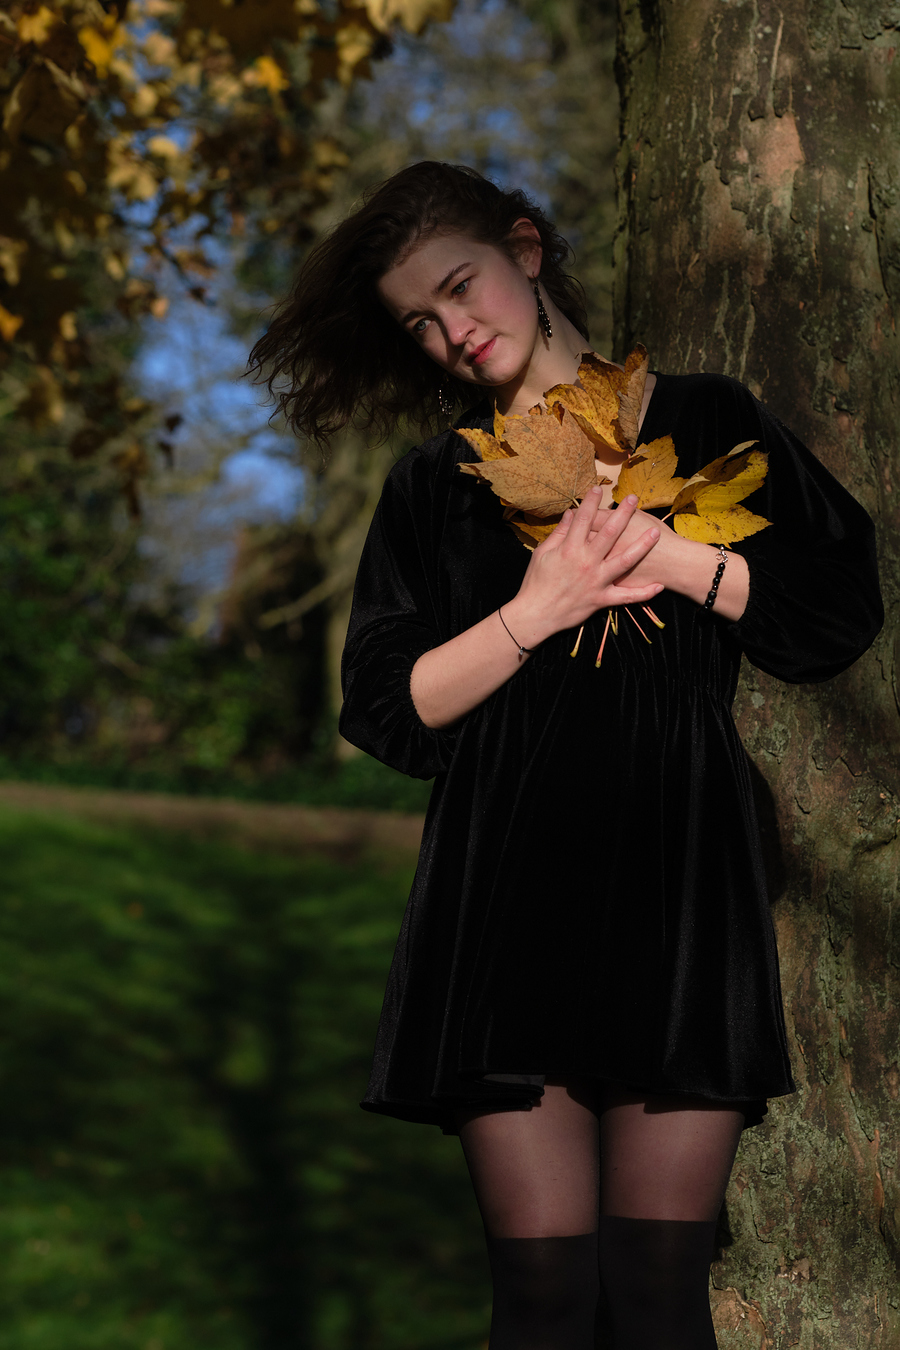 Leaves / Photography by Laurence Taylor / Uploaded 27th December 2020 @ 03:21 PM